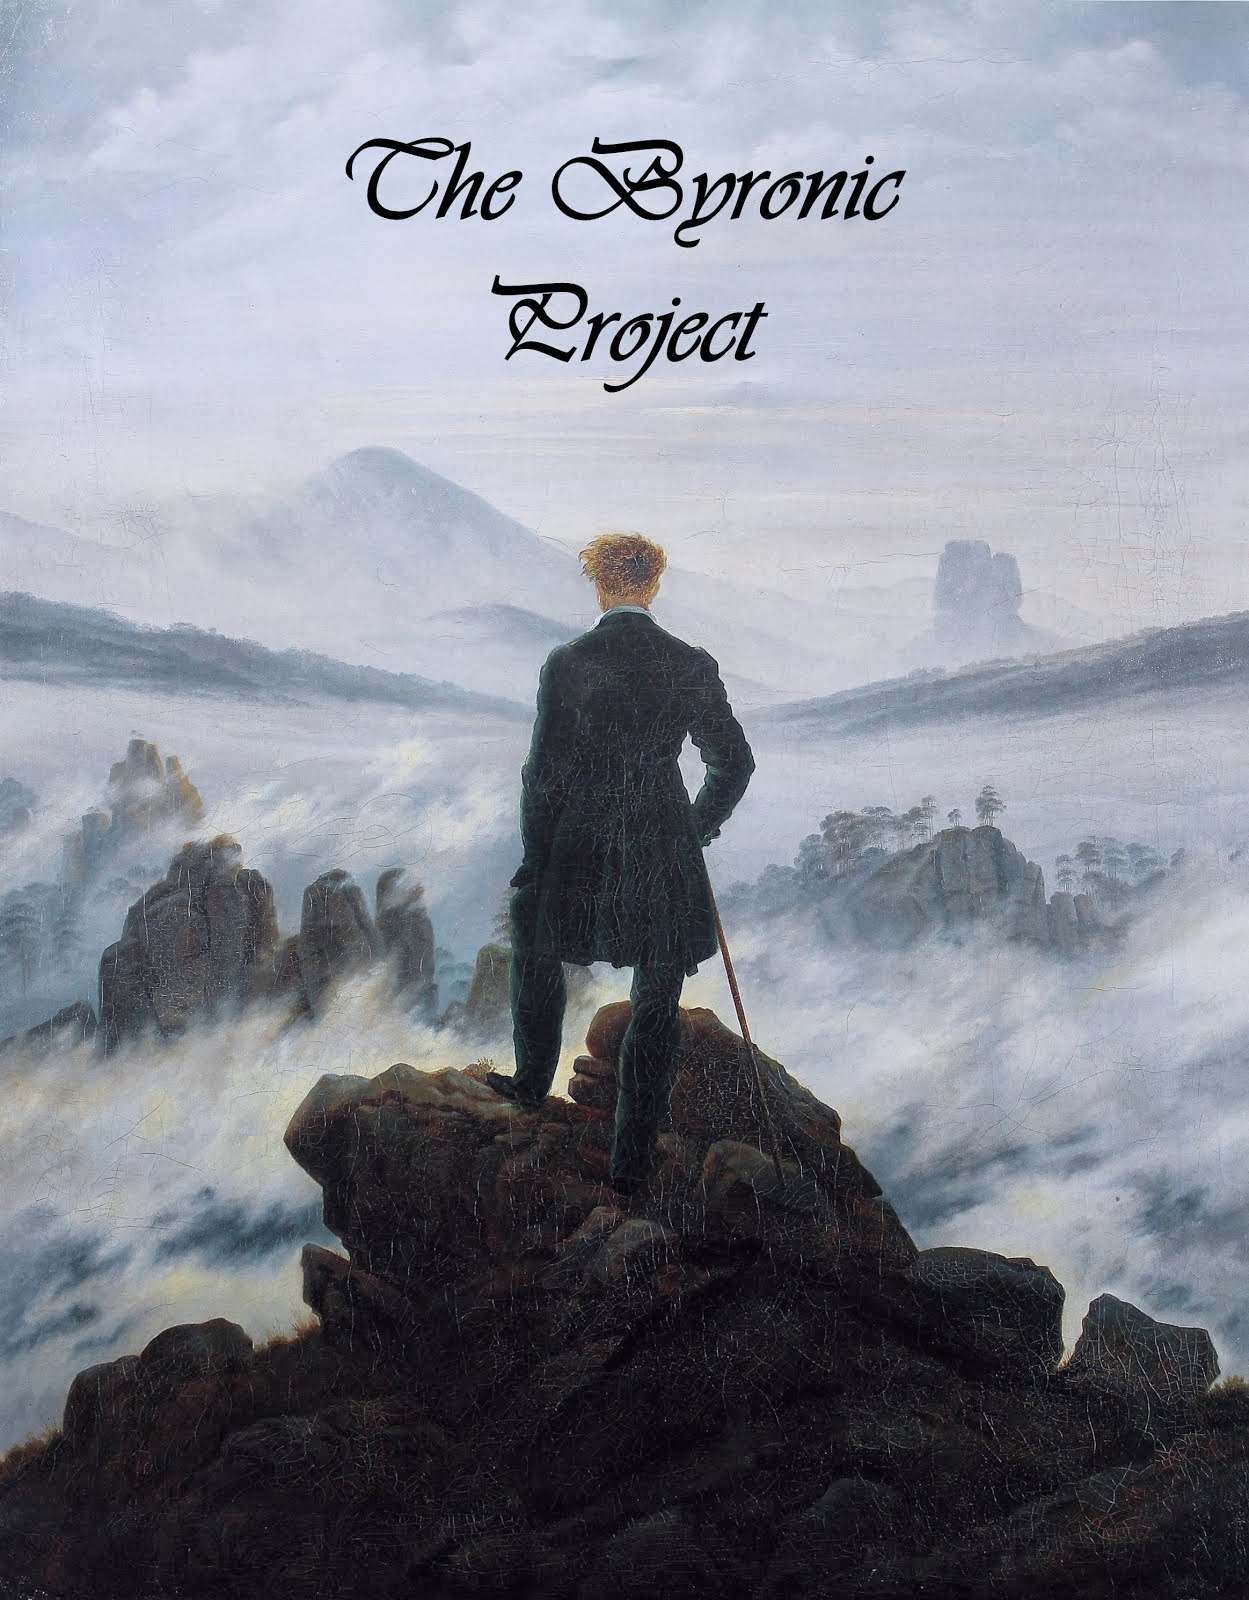 The Byronic Project